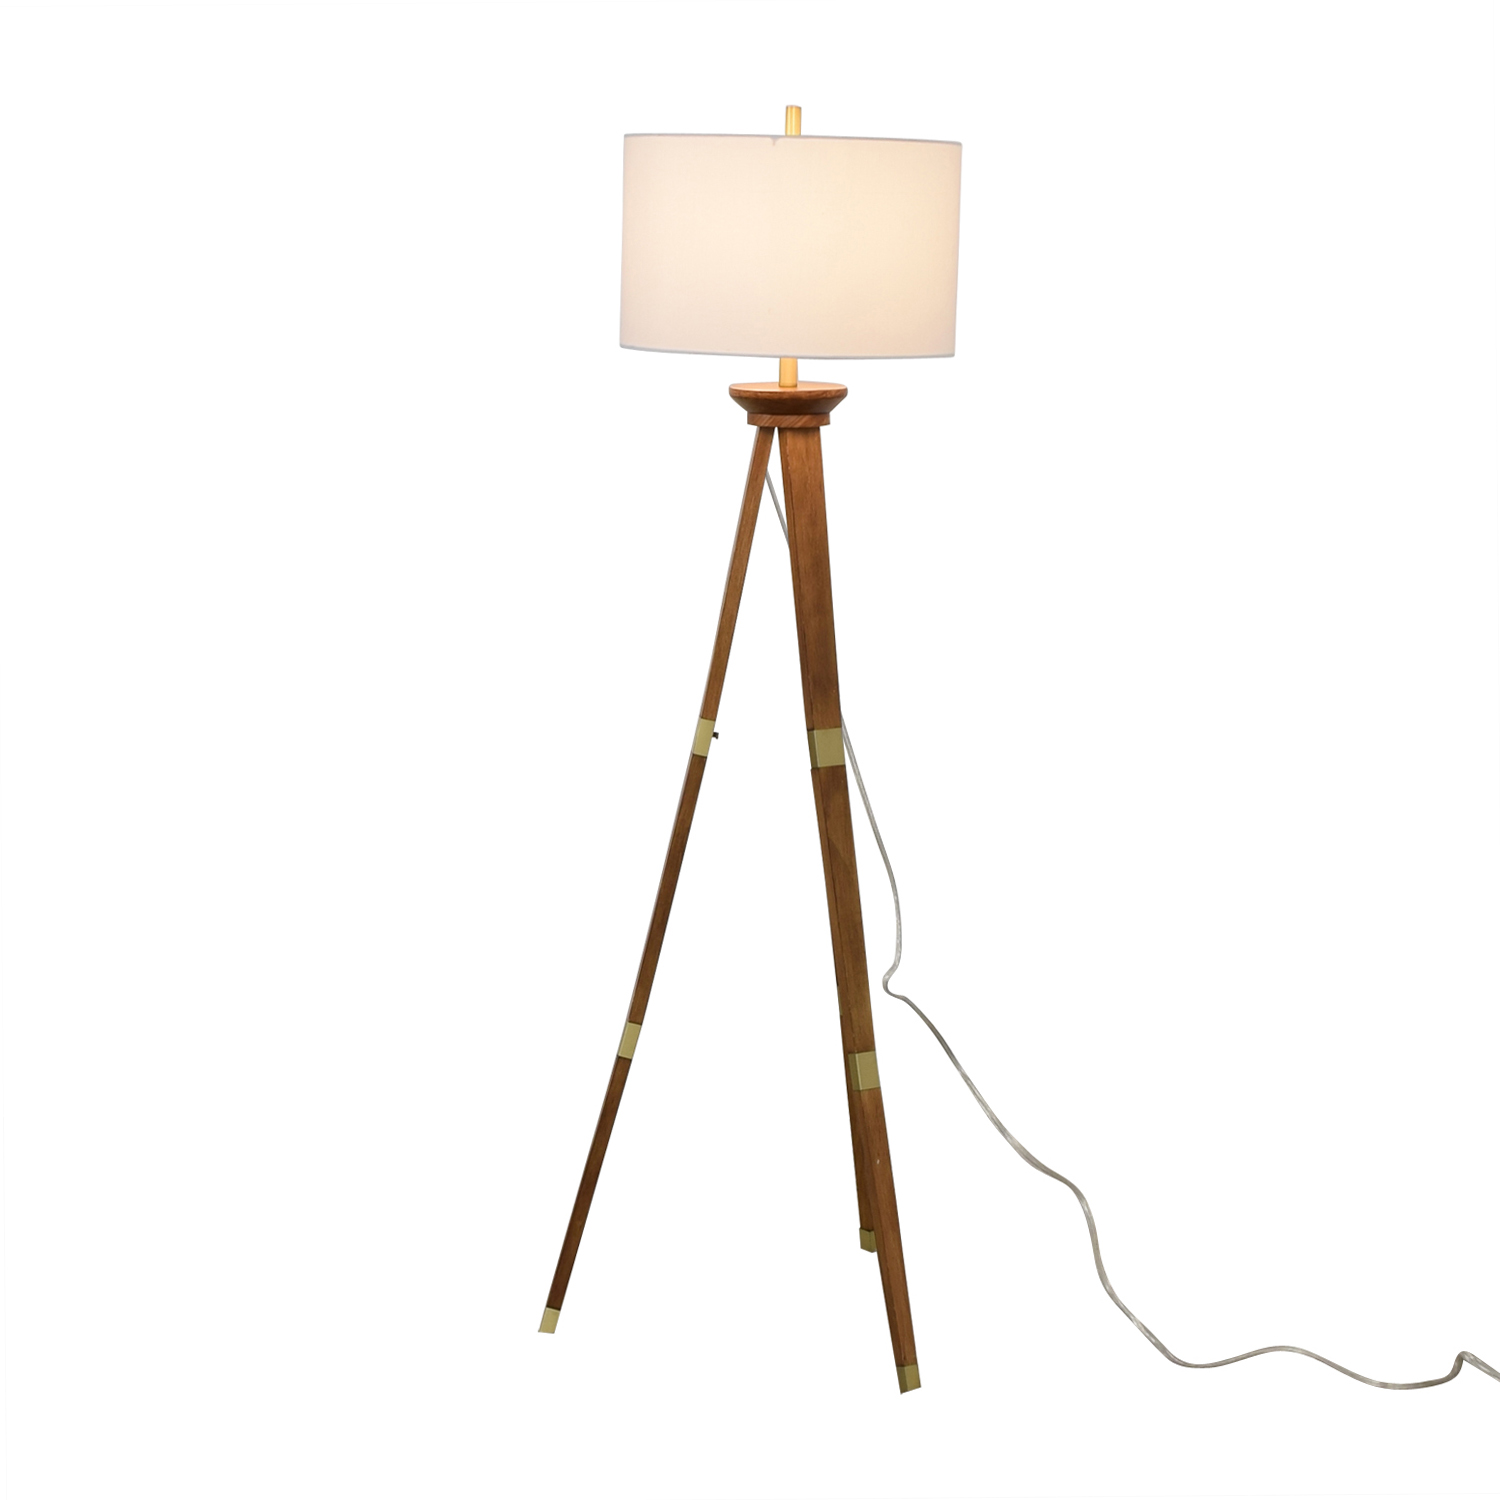 Article Article Tripod Floor Lamp on sale